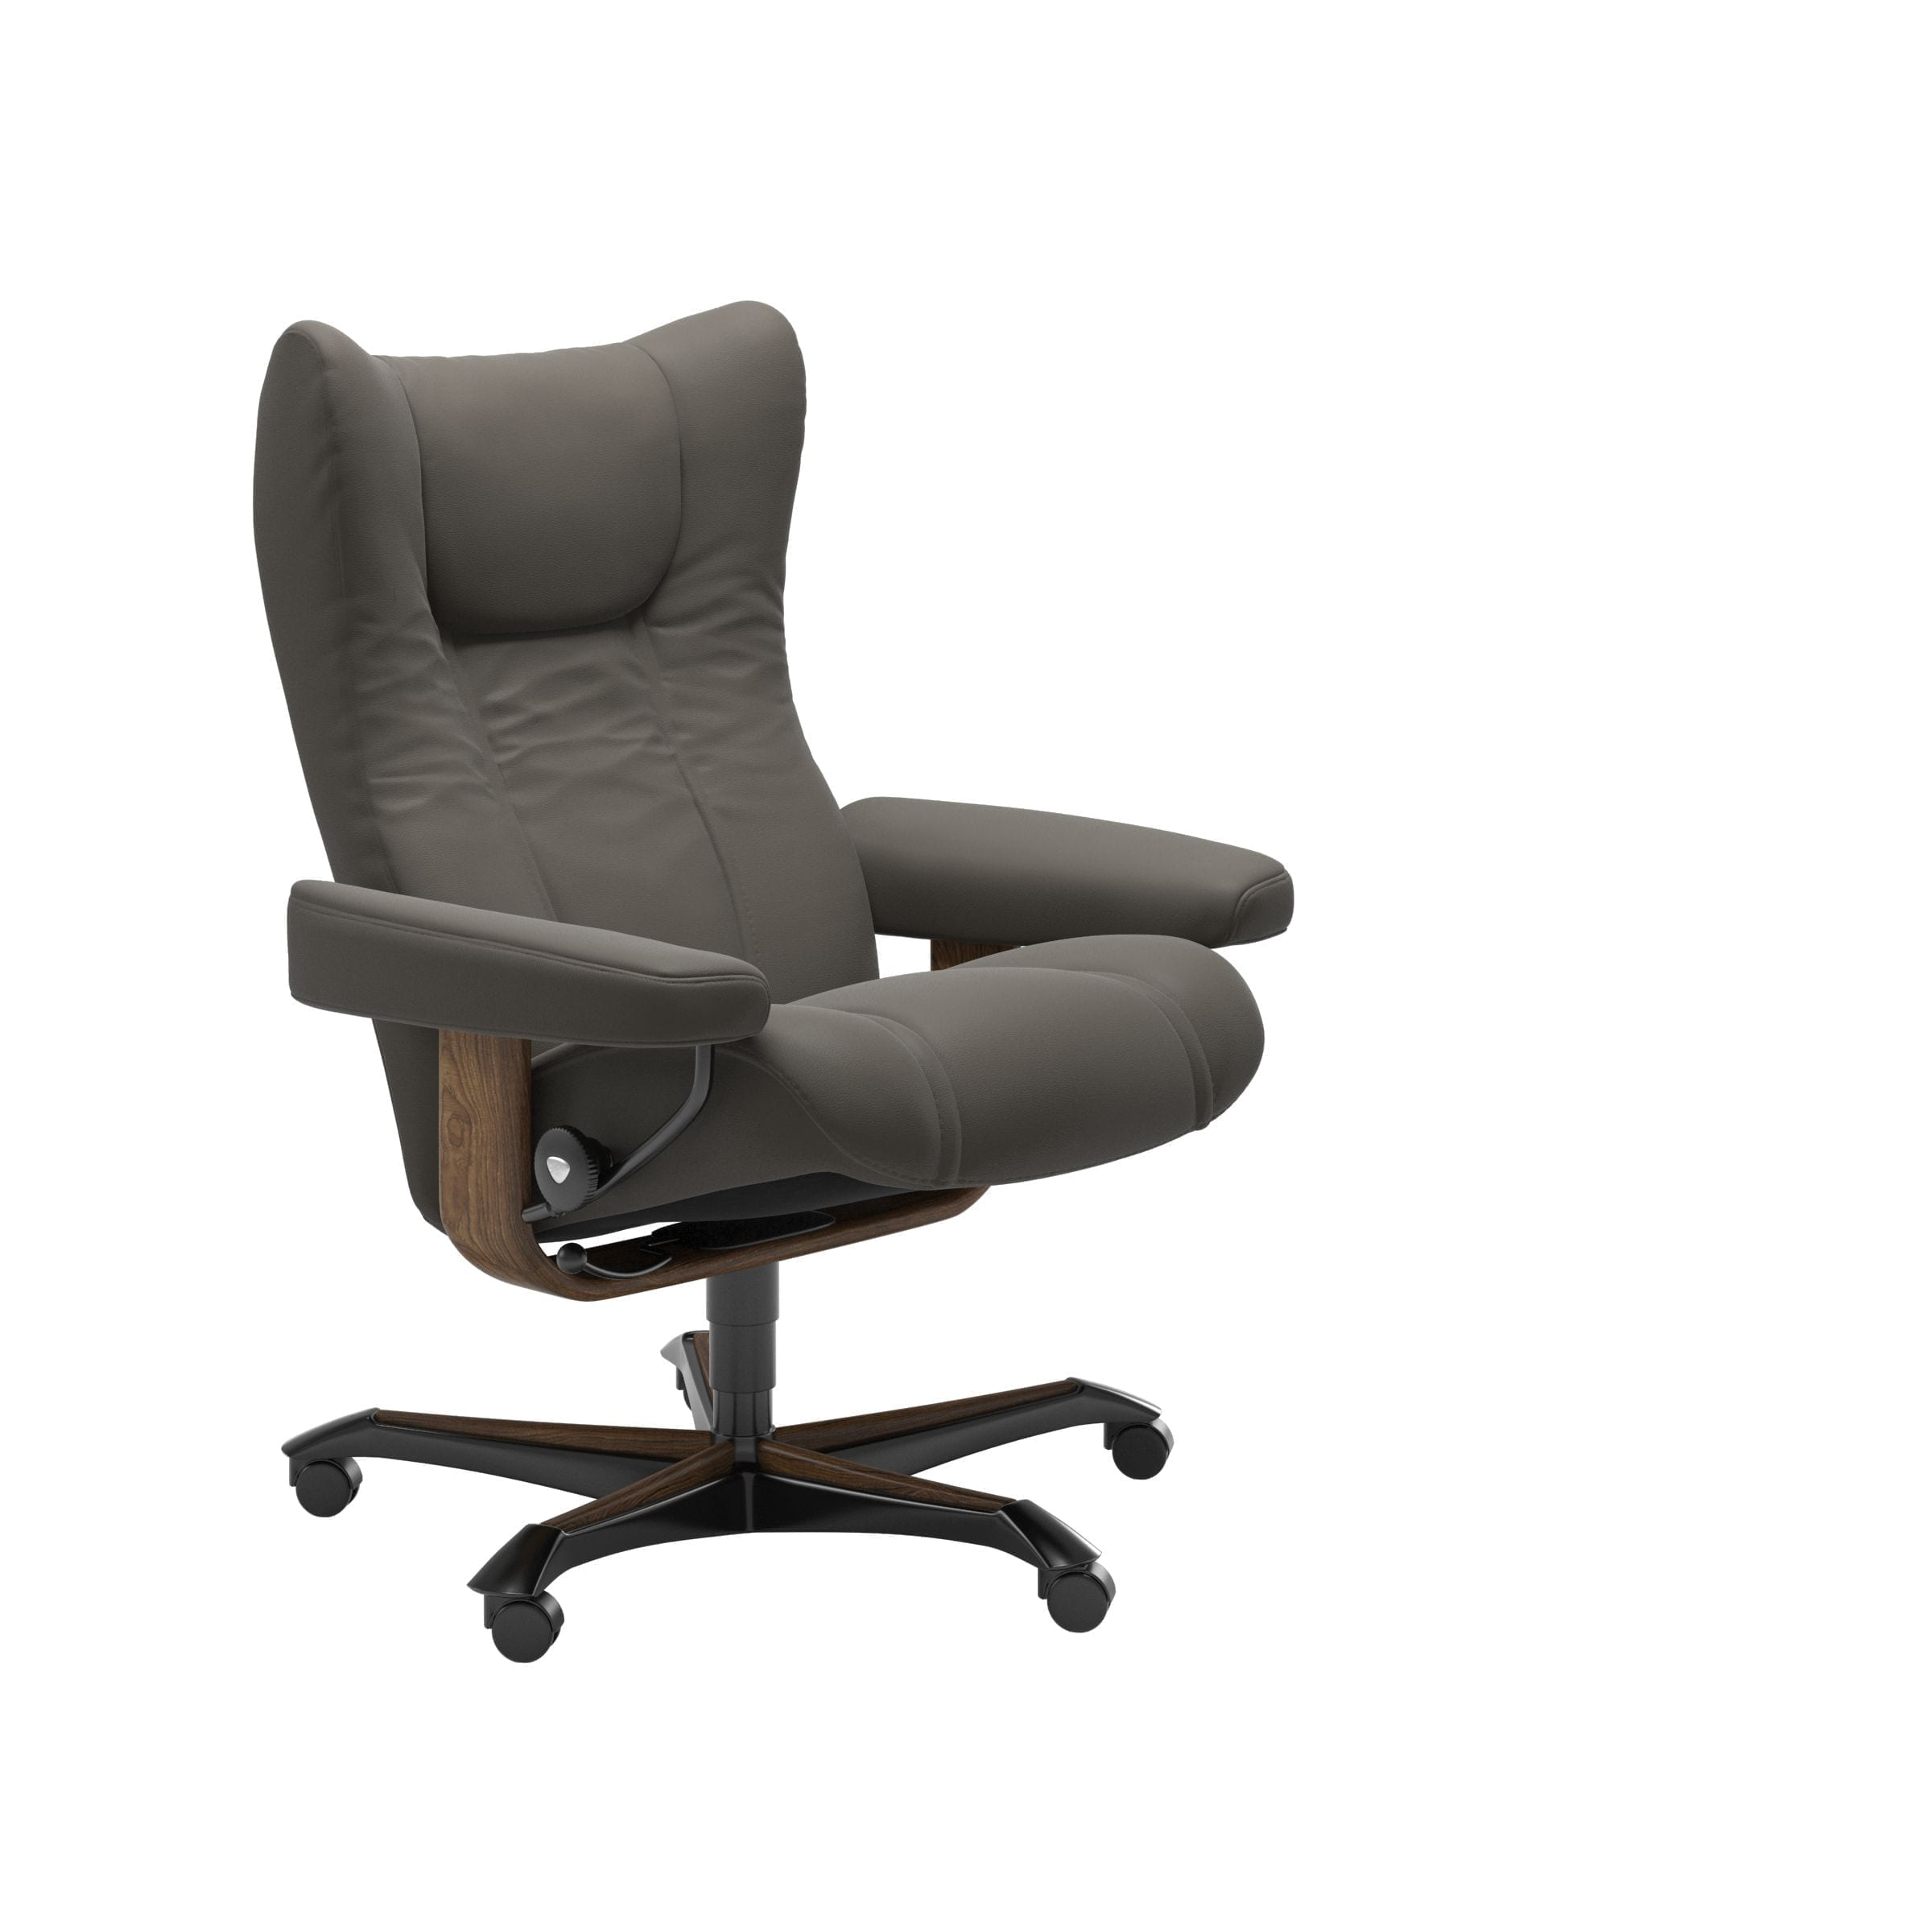 Wing Office Stressless Chair